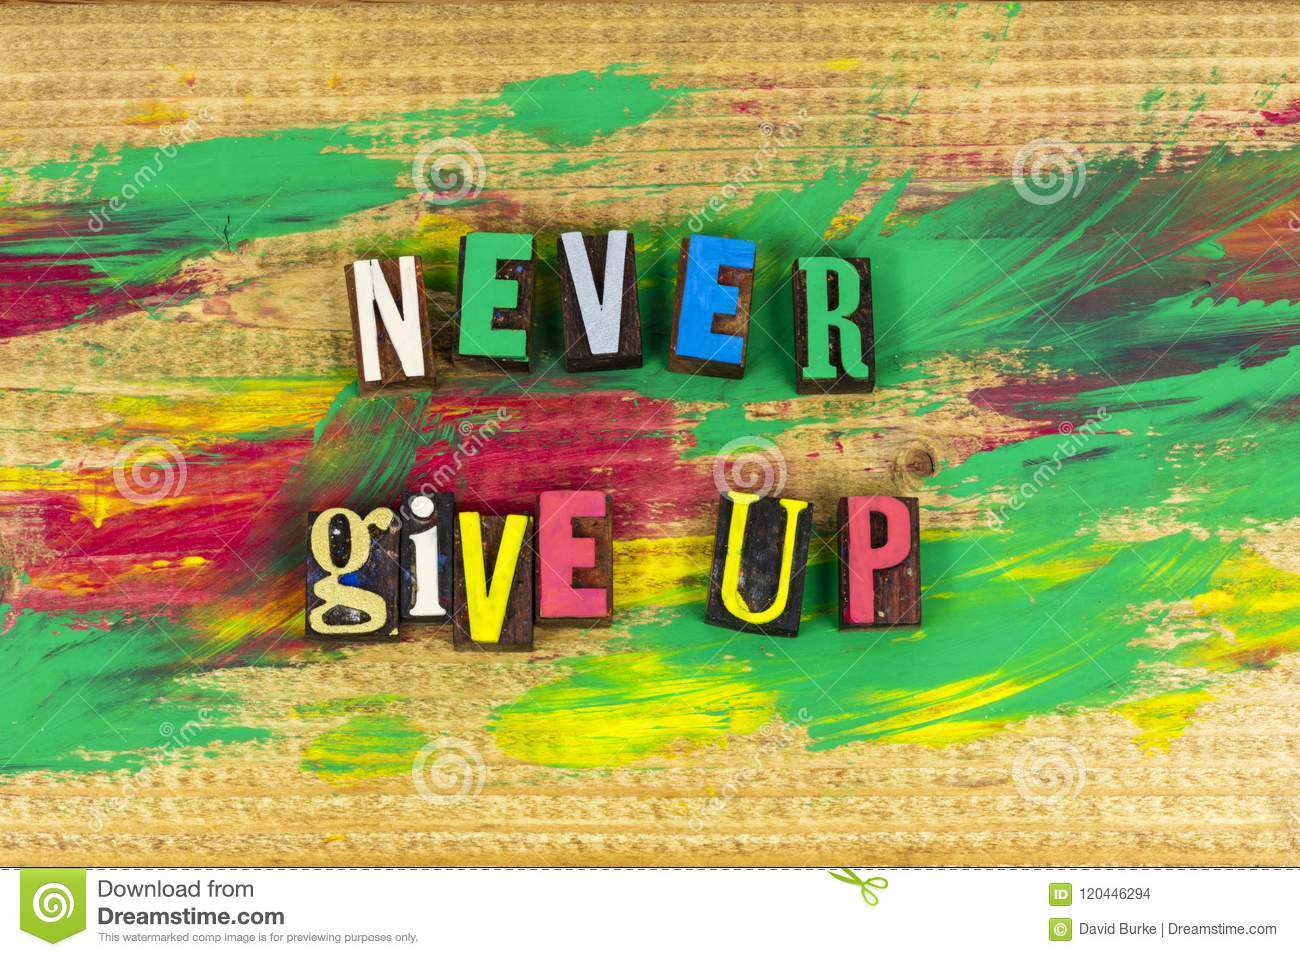 Never give up determination planning